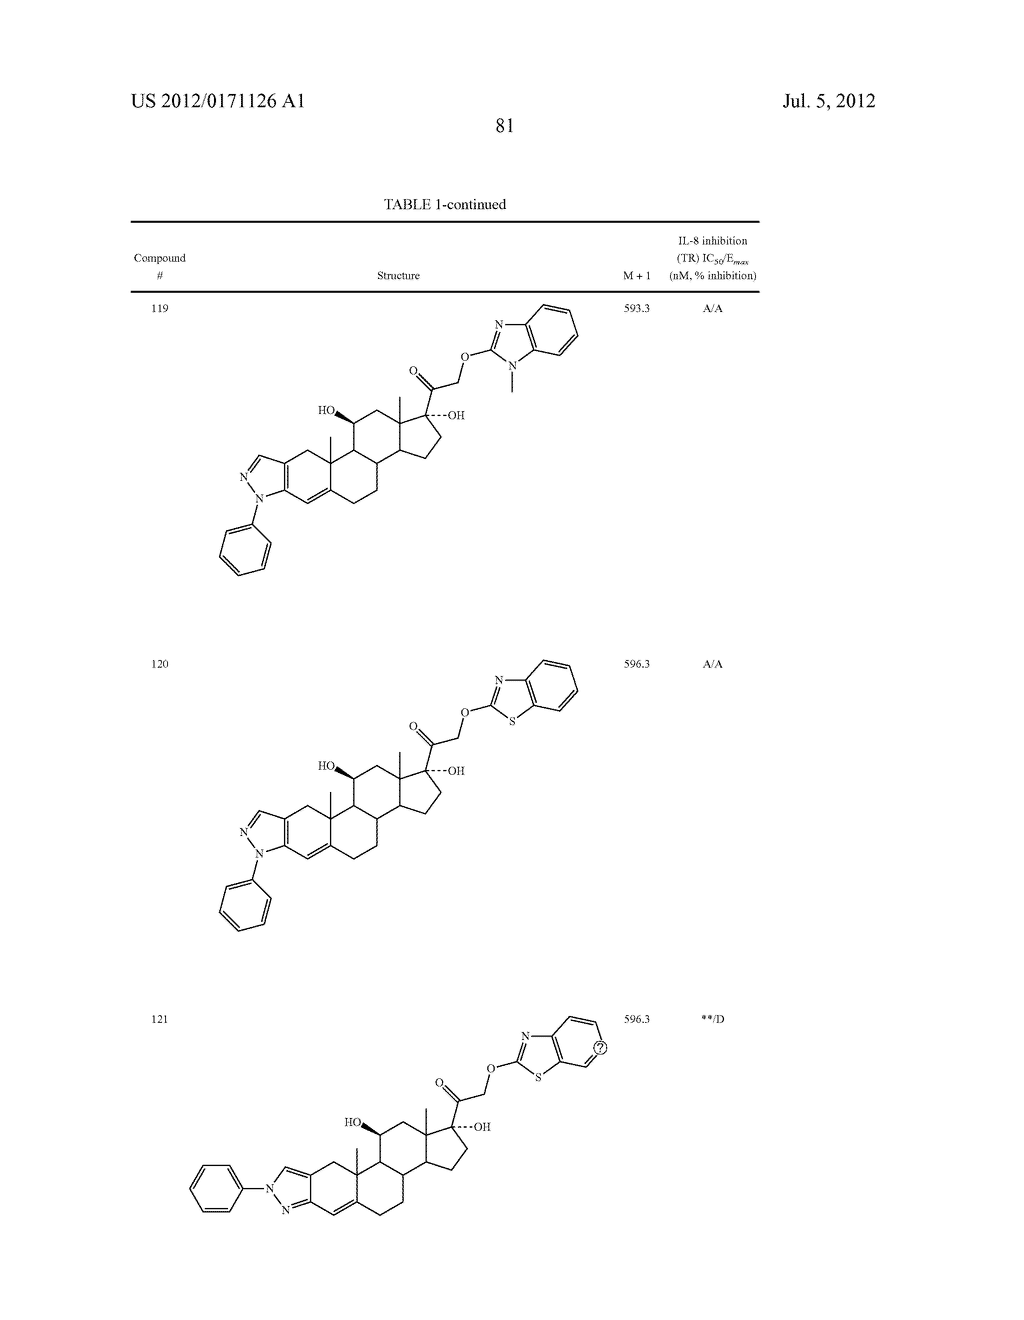 NOVEL [3,2-c] HETEROARYL STEROIDS AS GLUCOCORTICOID RECEPTOR AGONISTS     COMPOSITIONS AND USES THEREOF - diagram, schematic, and image 82